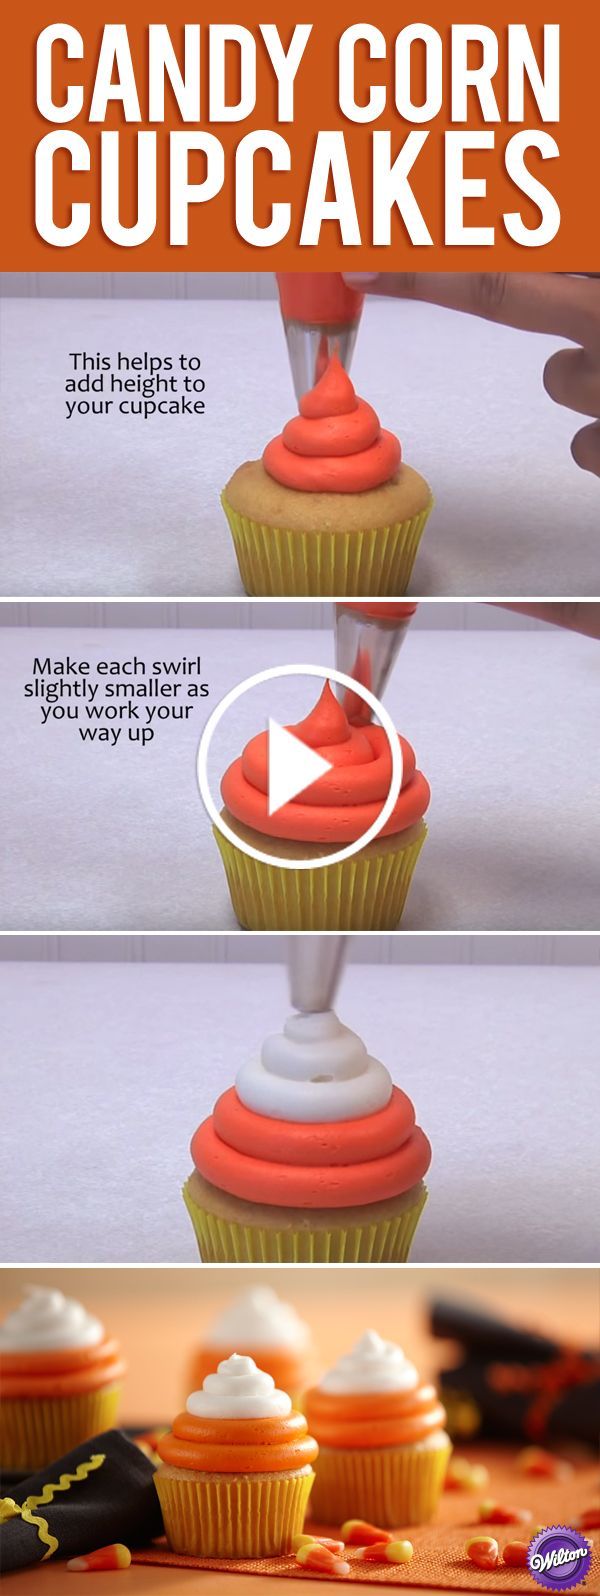 Learn how to make Candy Corn Cupcakes with our easy video tutorial. Yellow baking cups create the base of our candy corn, topped with orange icing and finished with white icing for a signature candy corn look. These fall-festive cupcakes are the perfect treat for Halloween parties and Fall get-togethers.